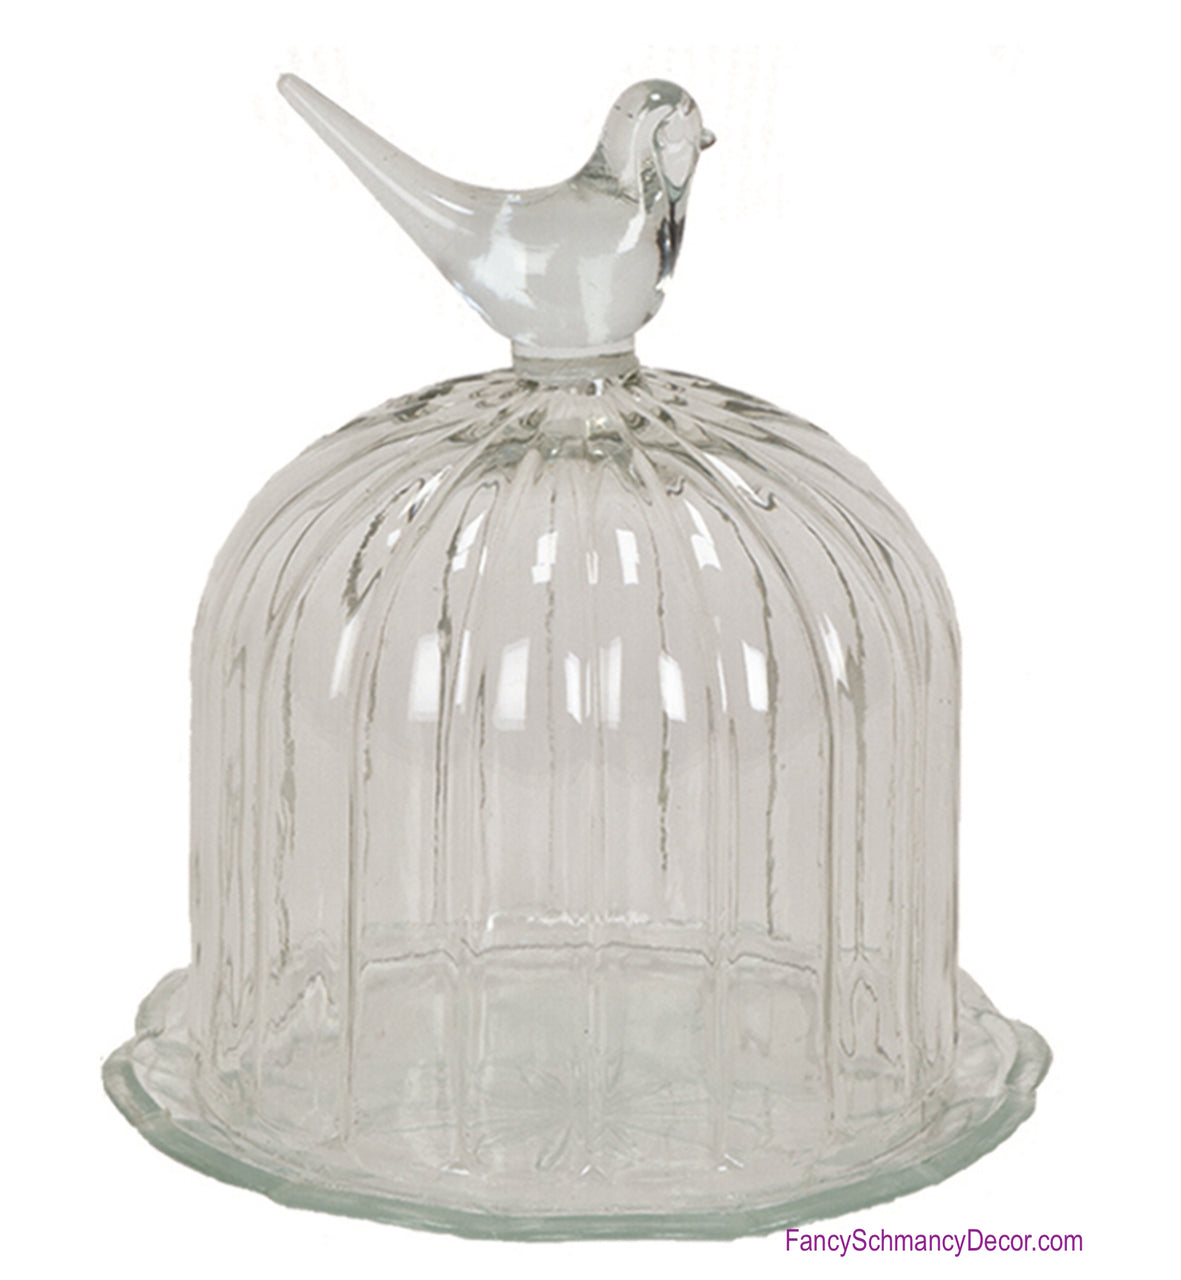 Glass Domed with Bird Cover Dish